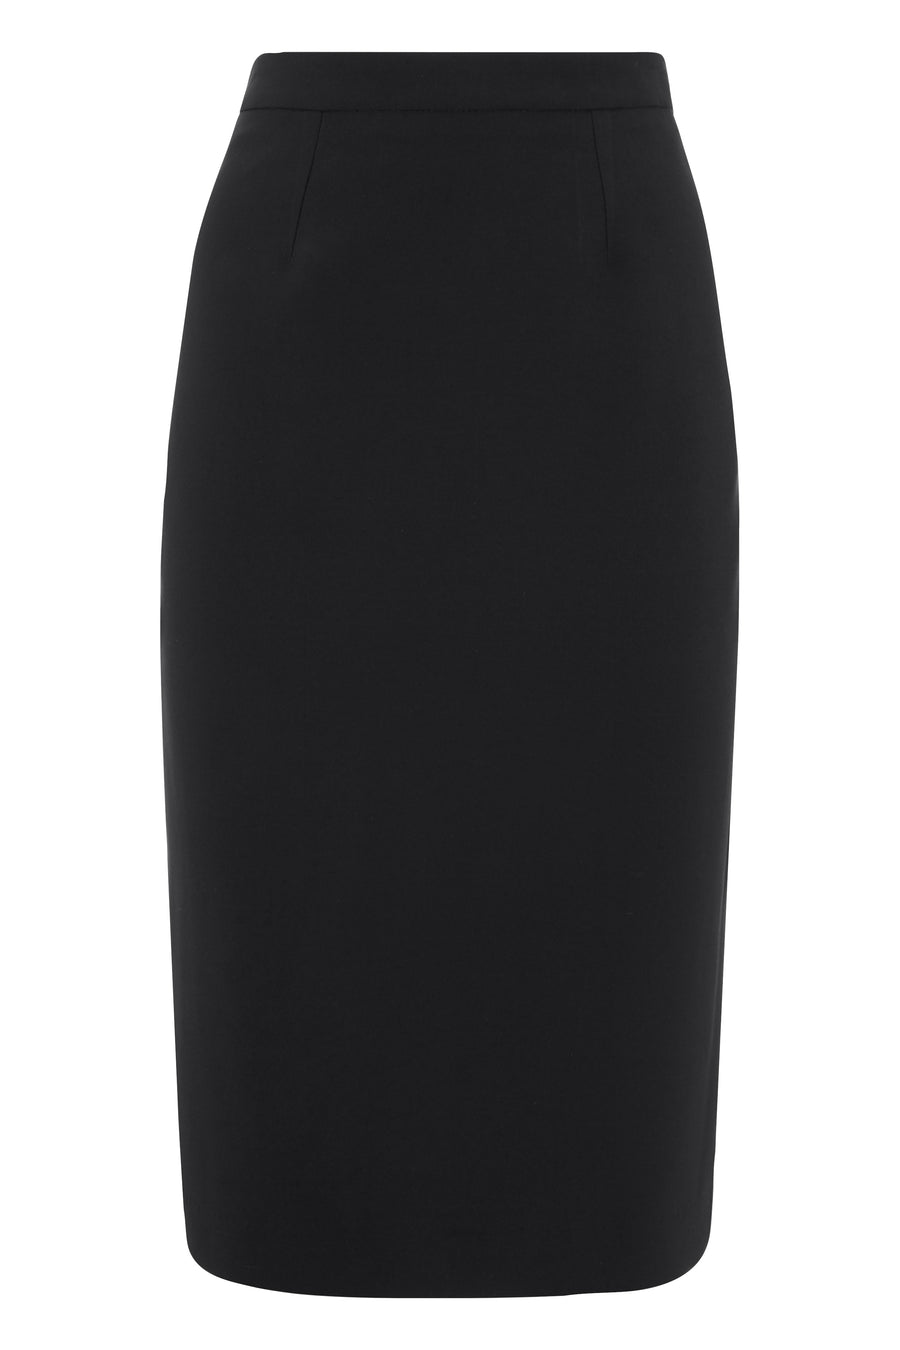 Suzy Black Suiting Skirt